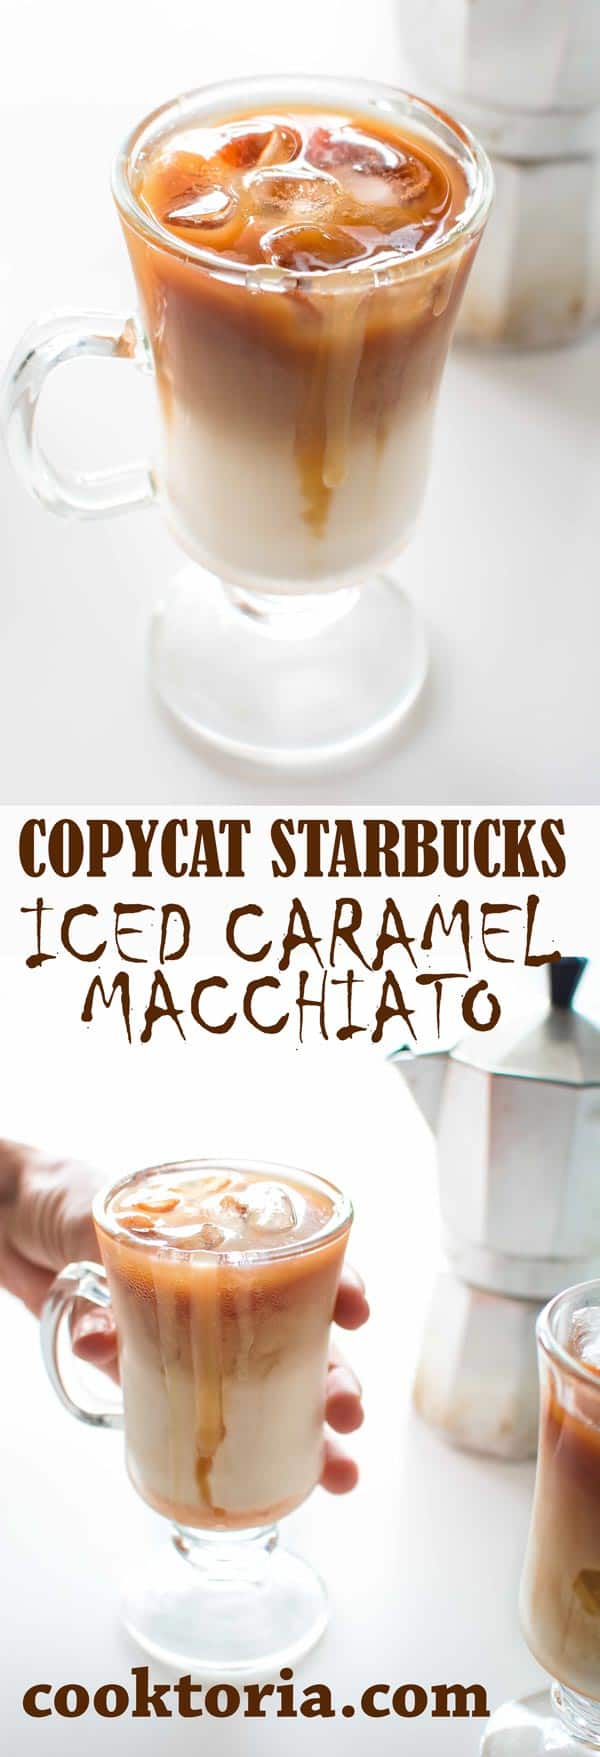 Iced Hot Chocolate Starbucks - Pumpkin Chocolate Chip Cookies